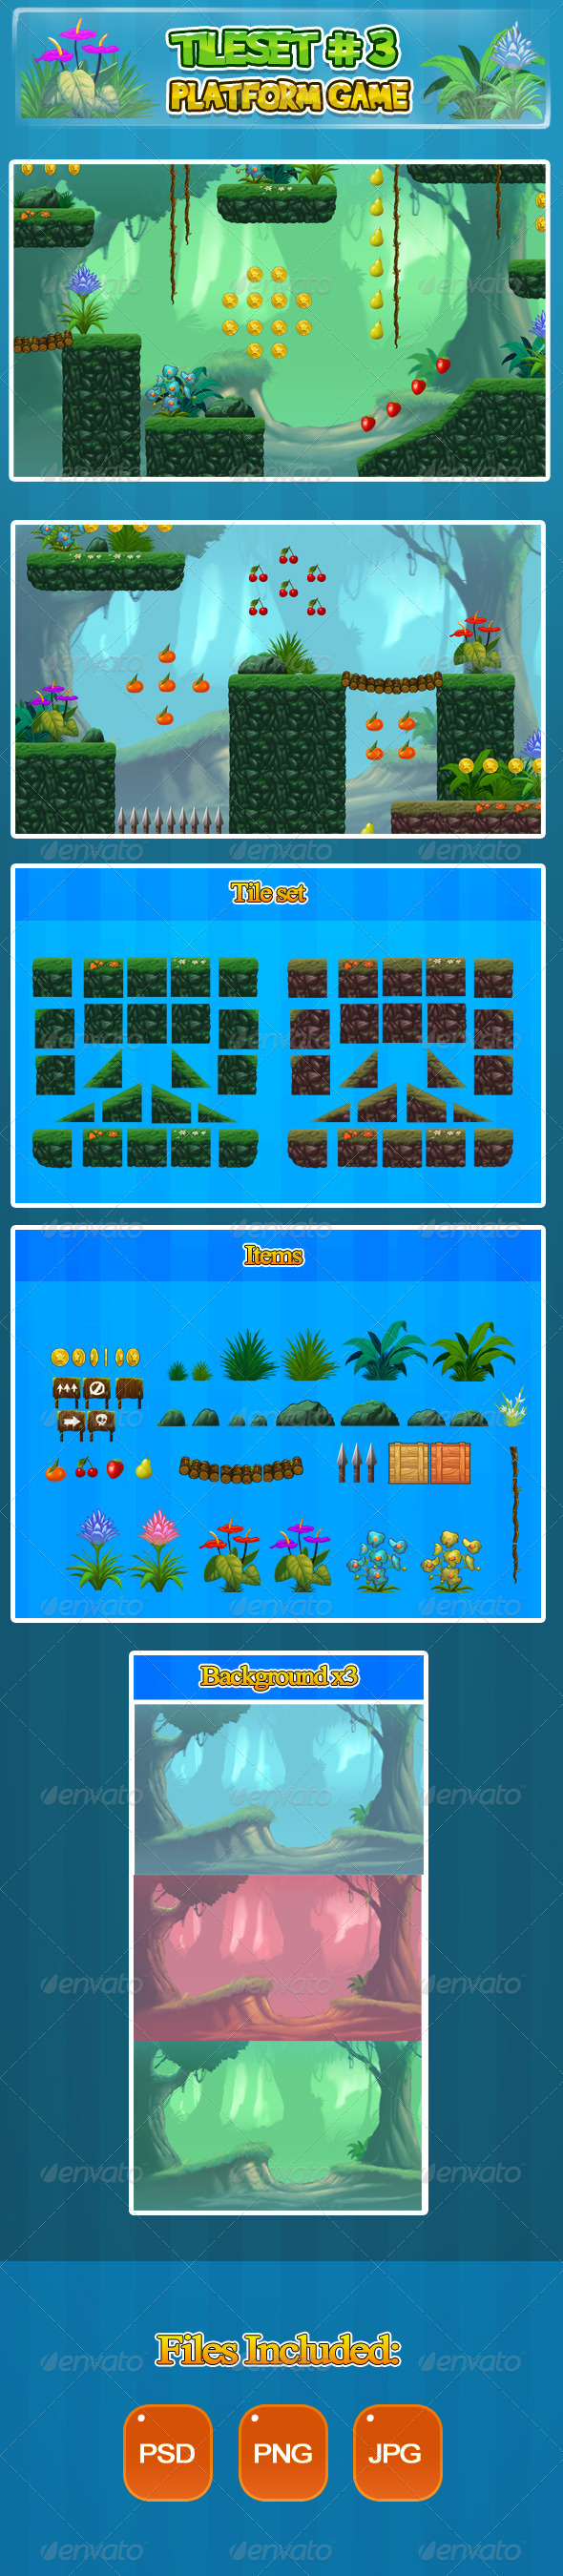 GraphicRiver 2D Tileset Platform Game 3 6485663